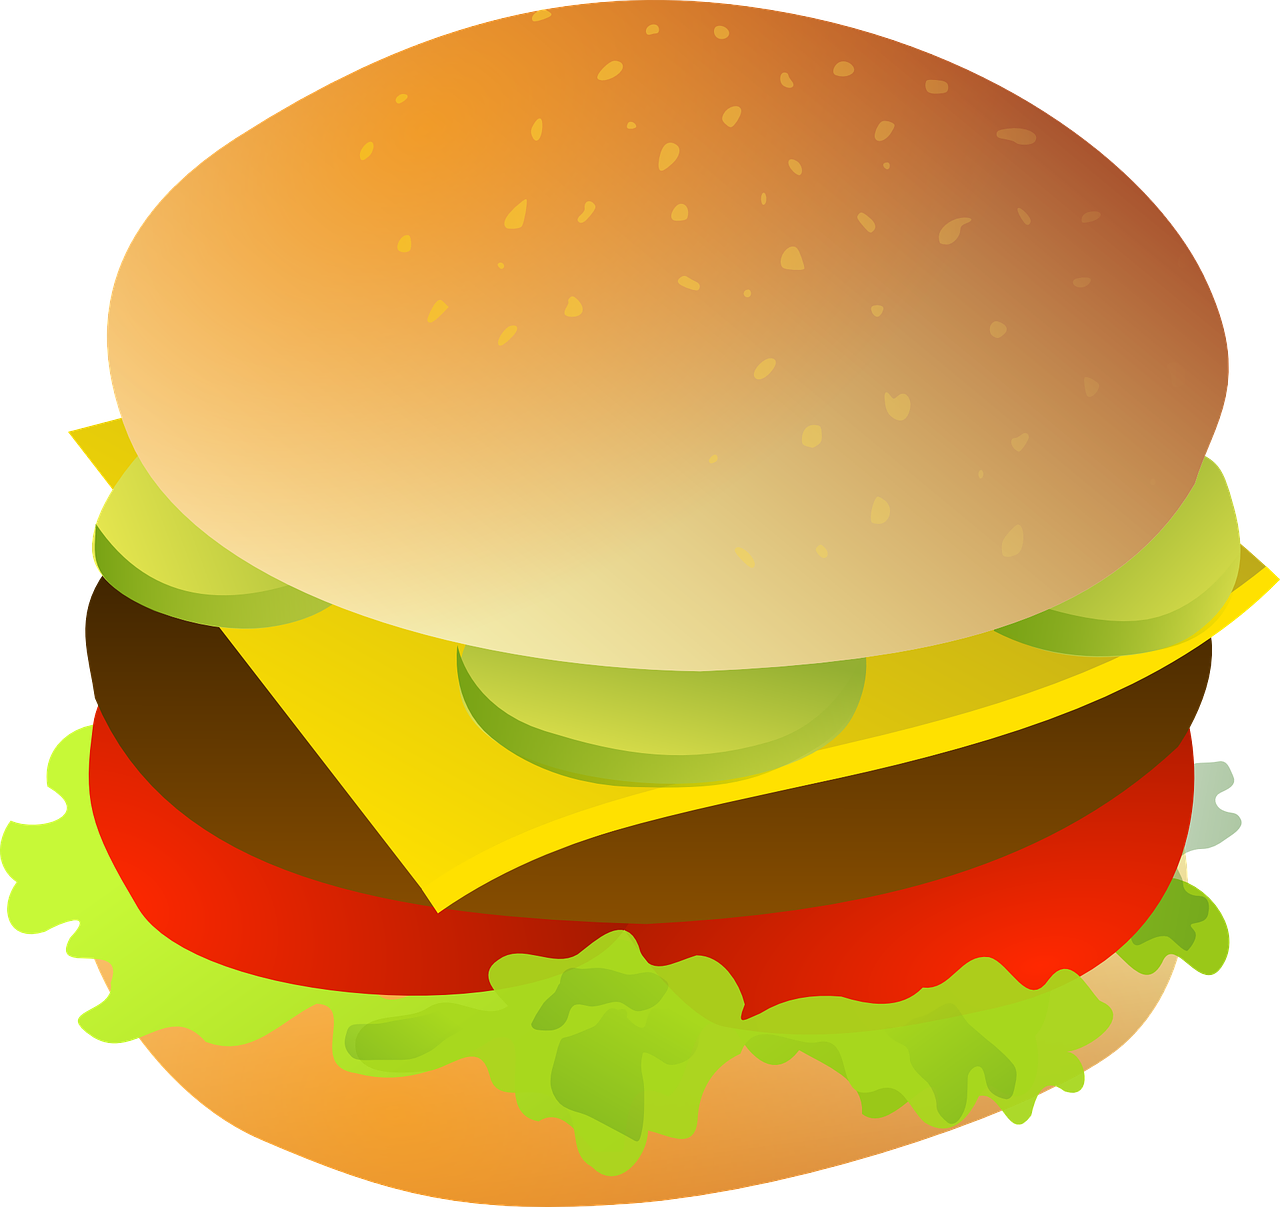 graphic freeuse library cheeseburger drawing illustration #110518596